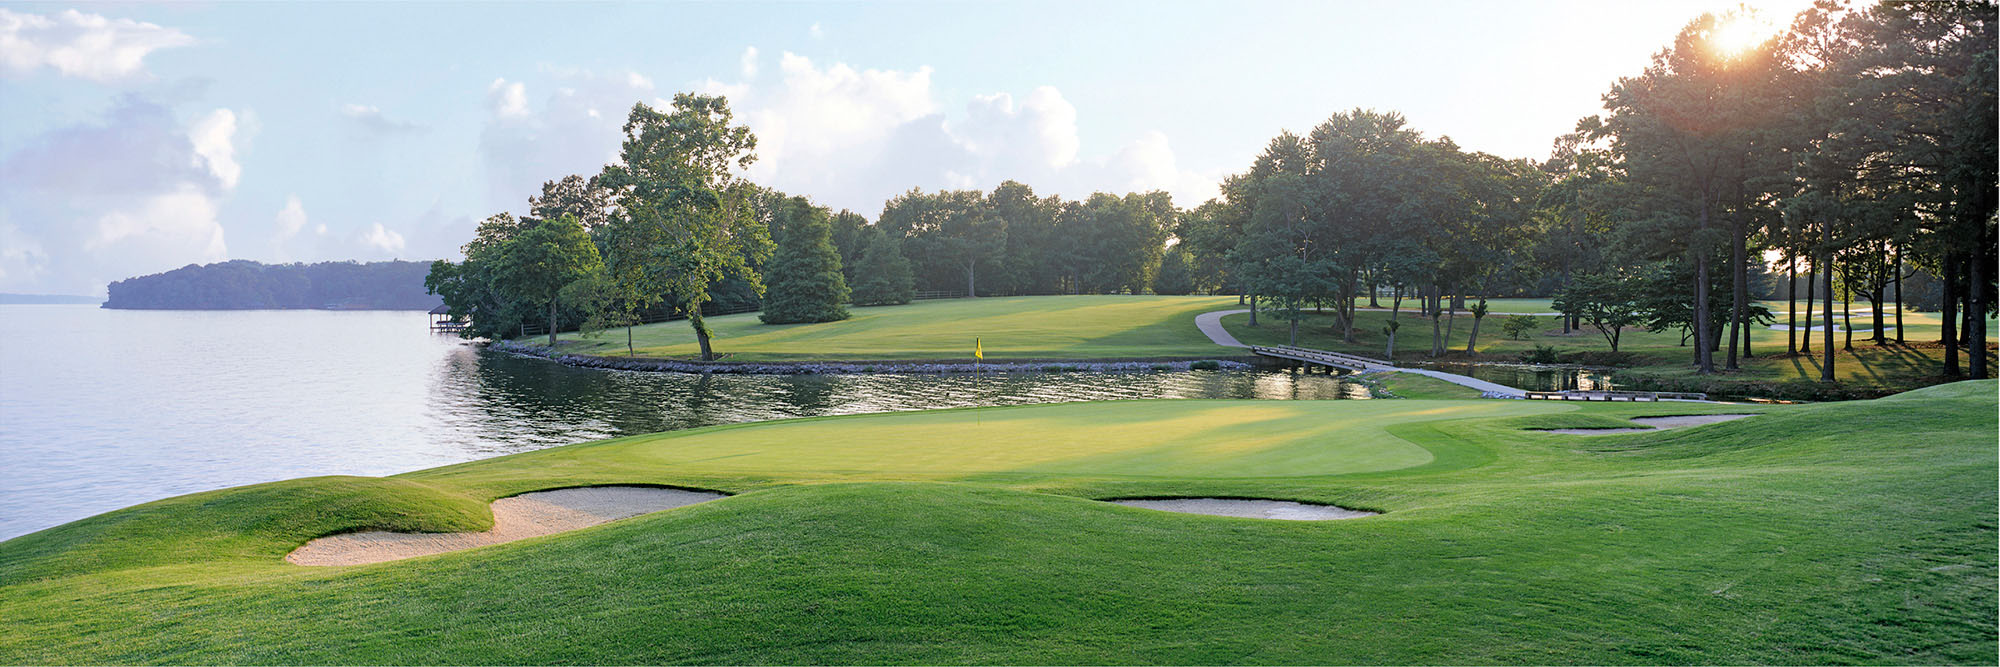 Golf Course Image - Turtle Point Yacht CC No. 18